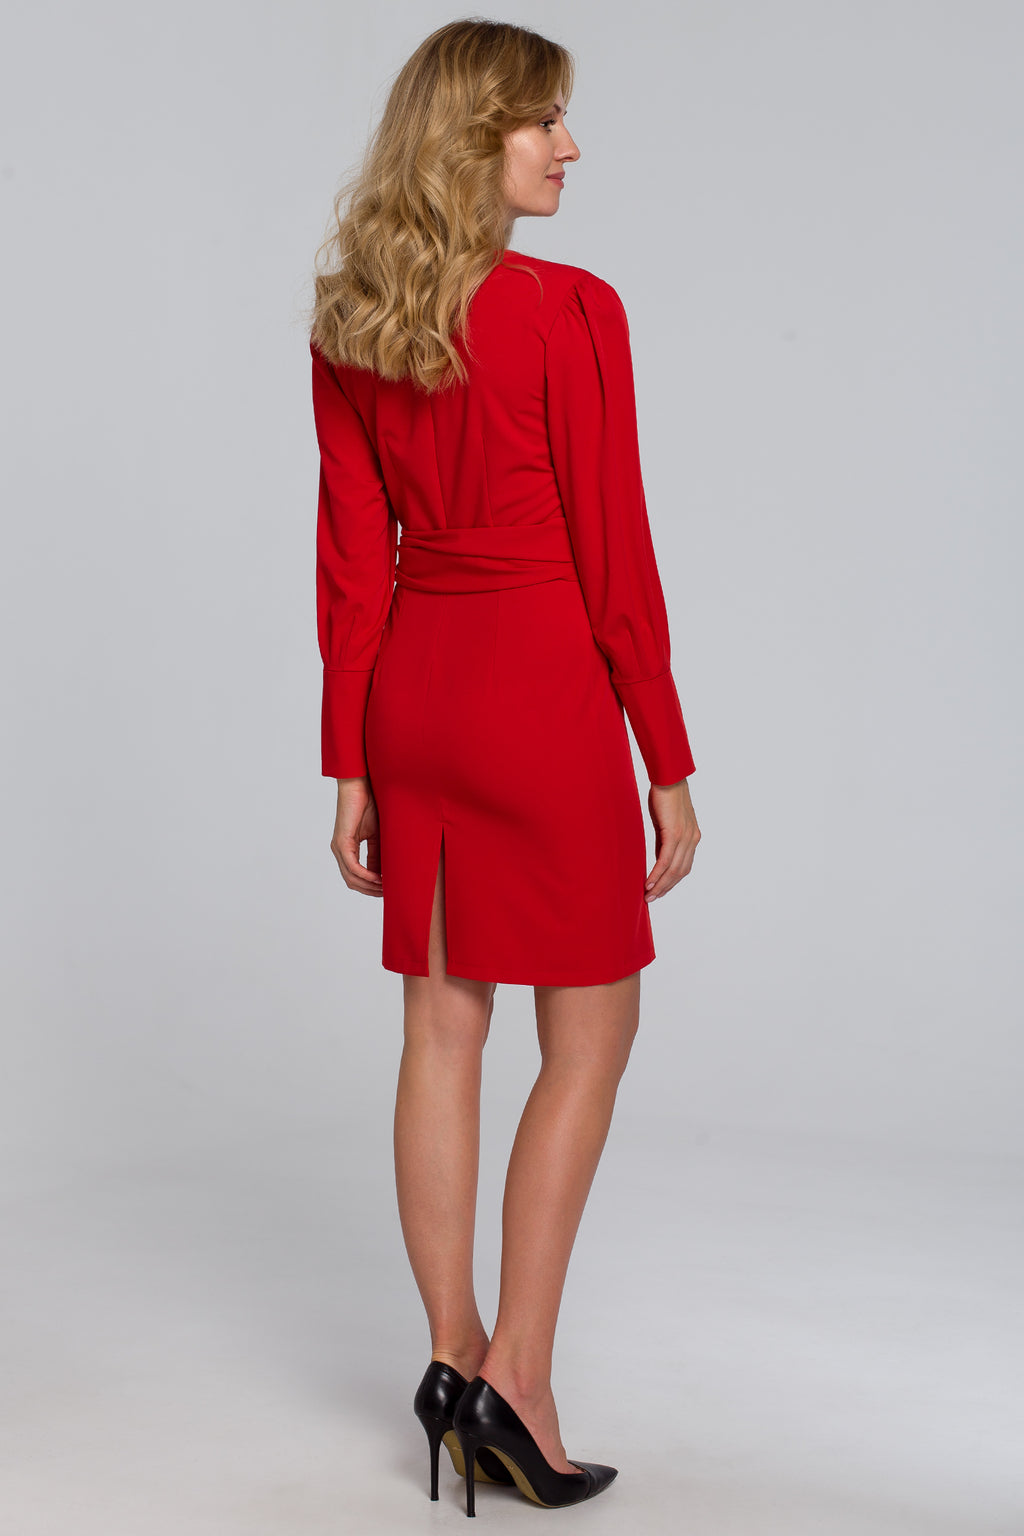 Mini Red Dress With Wide Tie Belt - So Chic Boutique